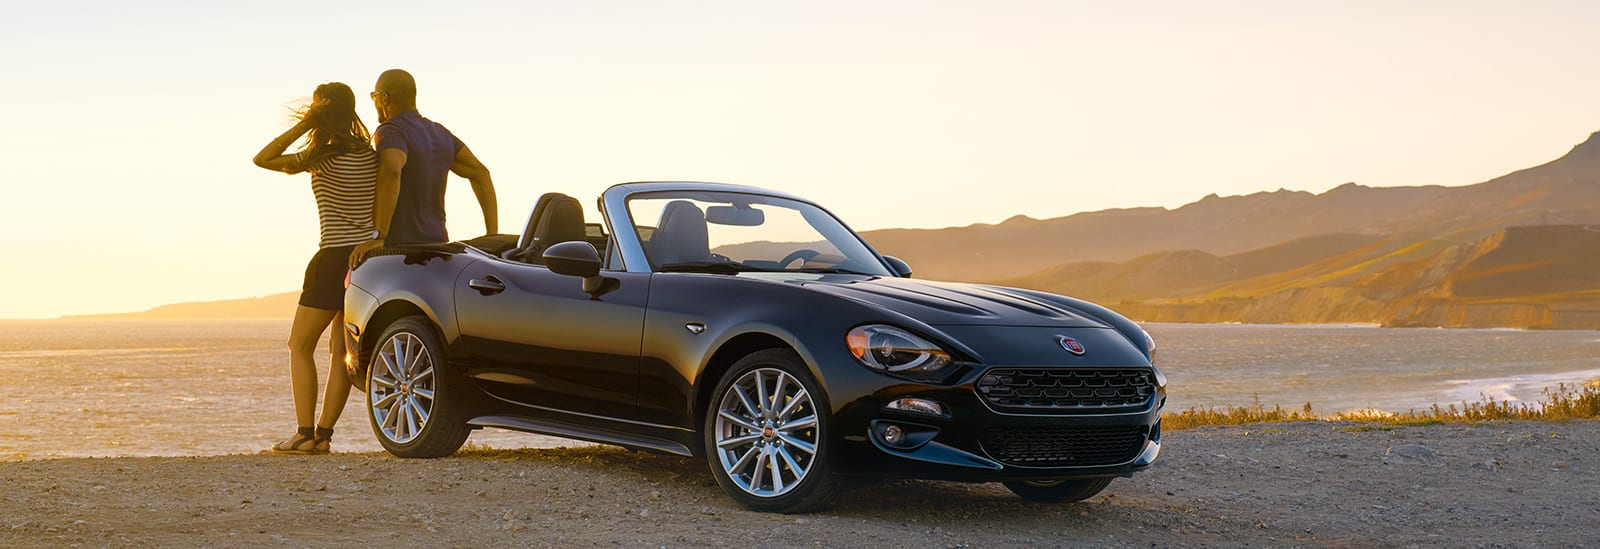 2017 FIAT 124 Spider at sunset